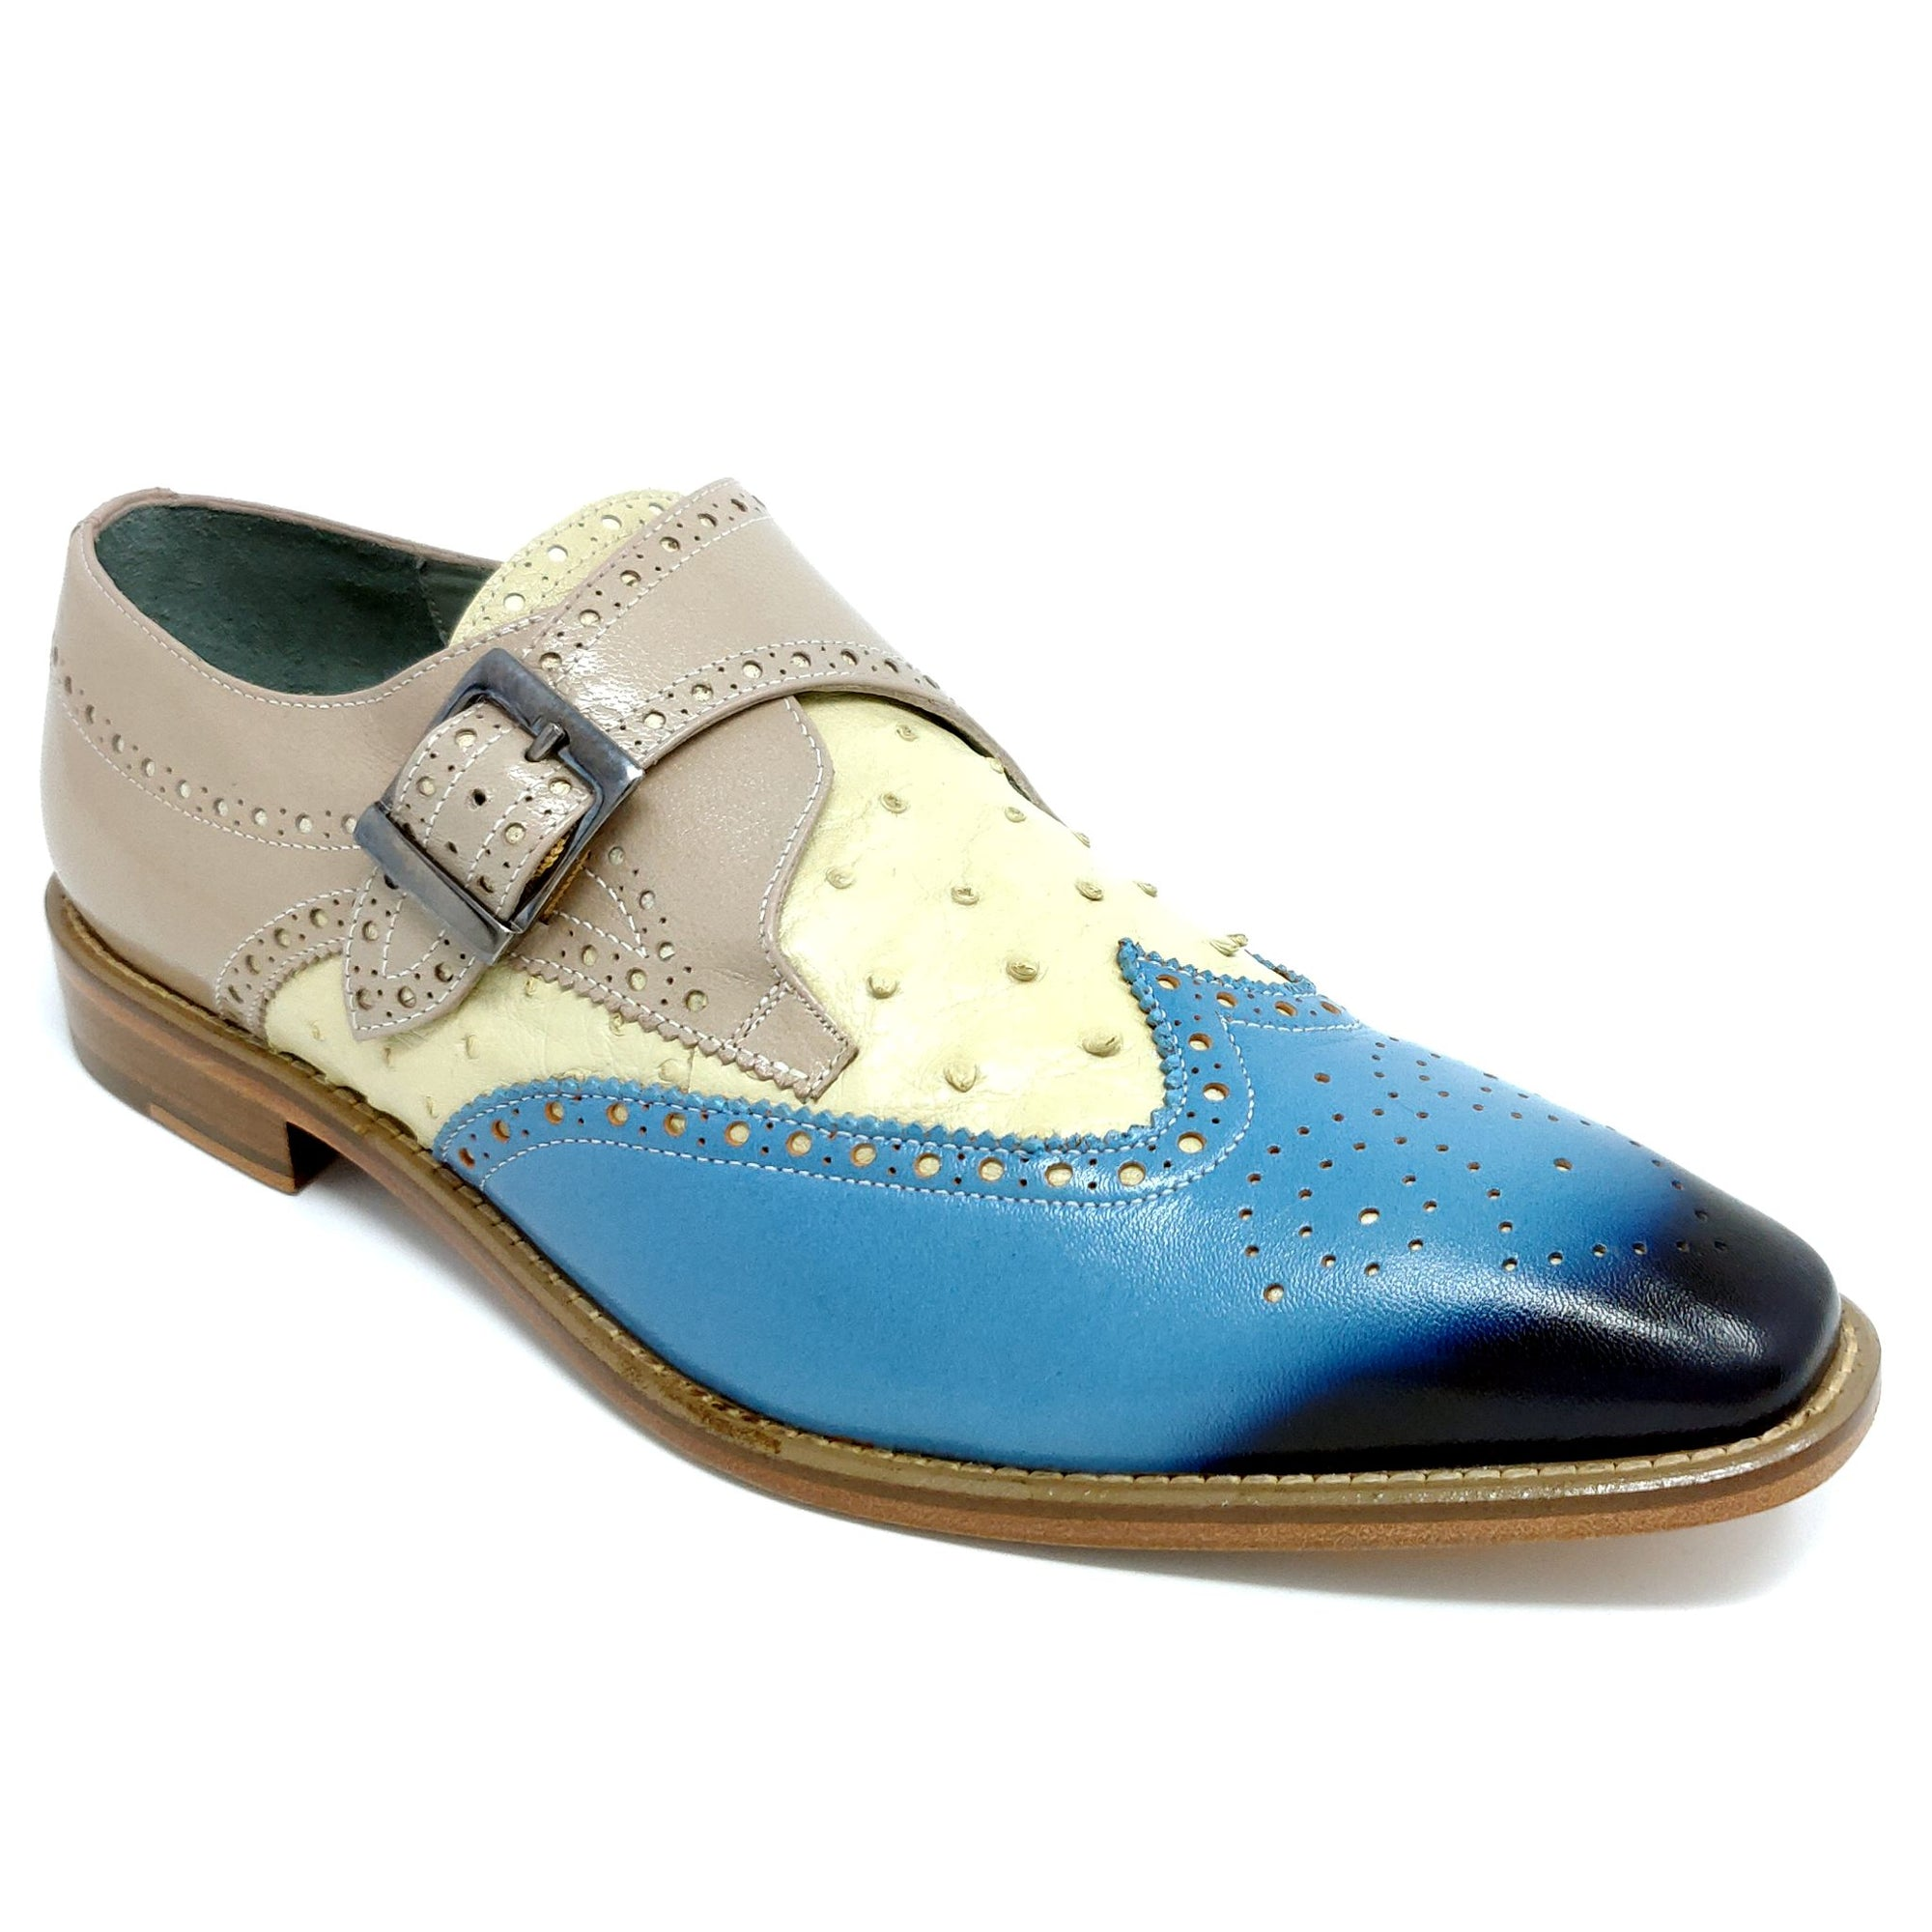 Belvedere Furio, Genuine Ostrich and Italian Calf Monk Strap Wing Tip - Light Blue / Bone / Taupe Shoes - Dapperfam.com